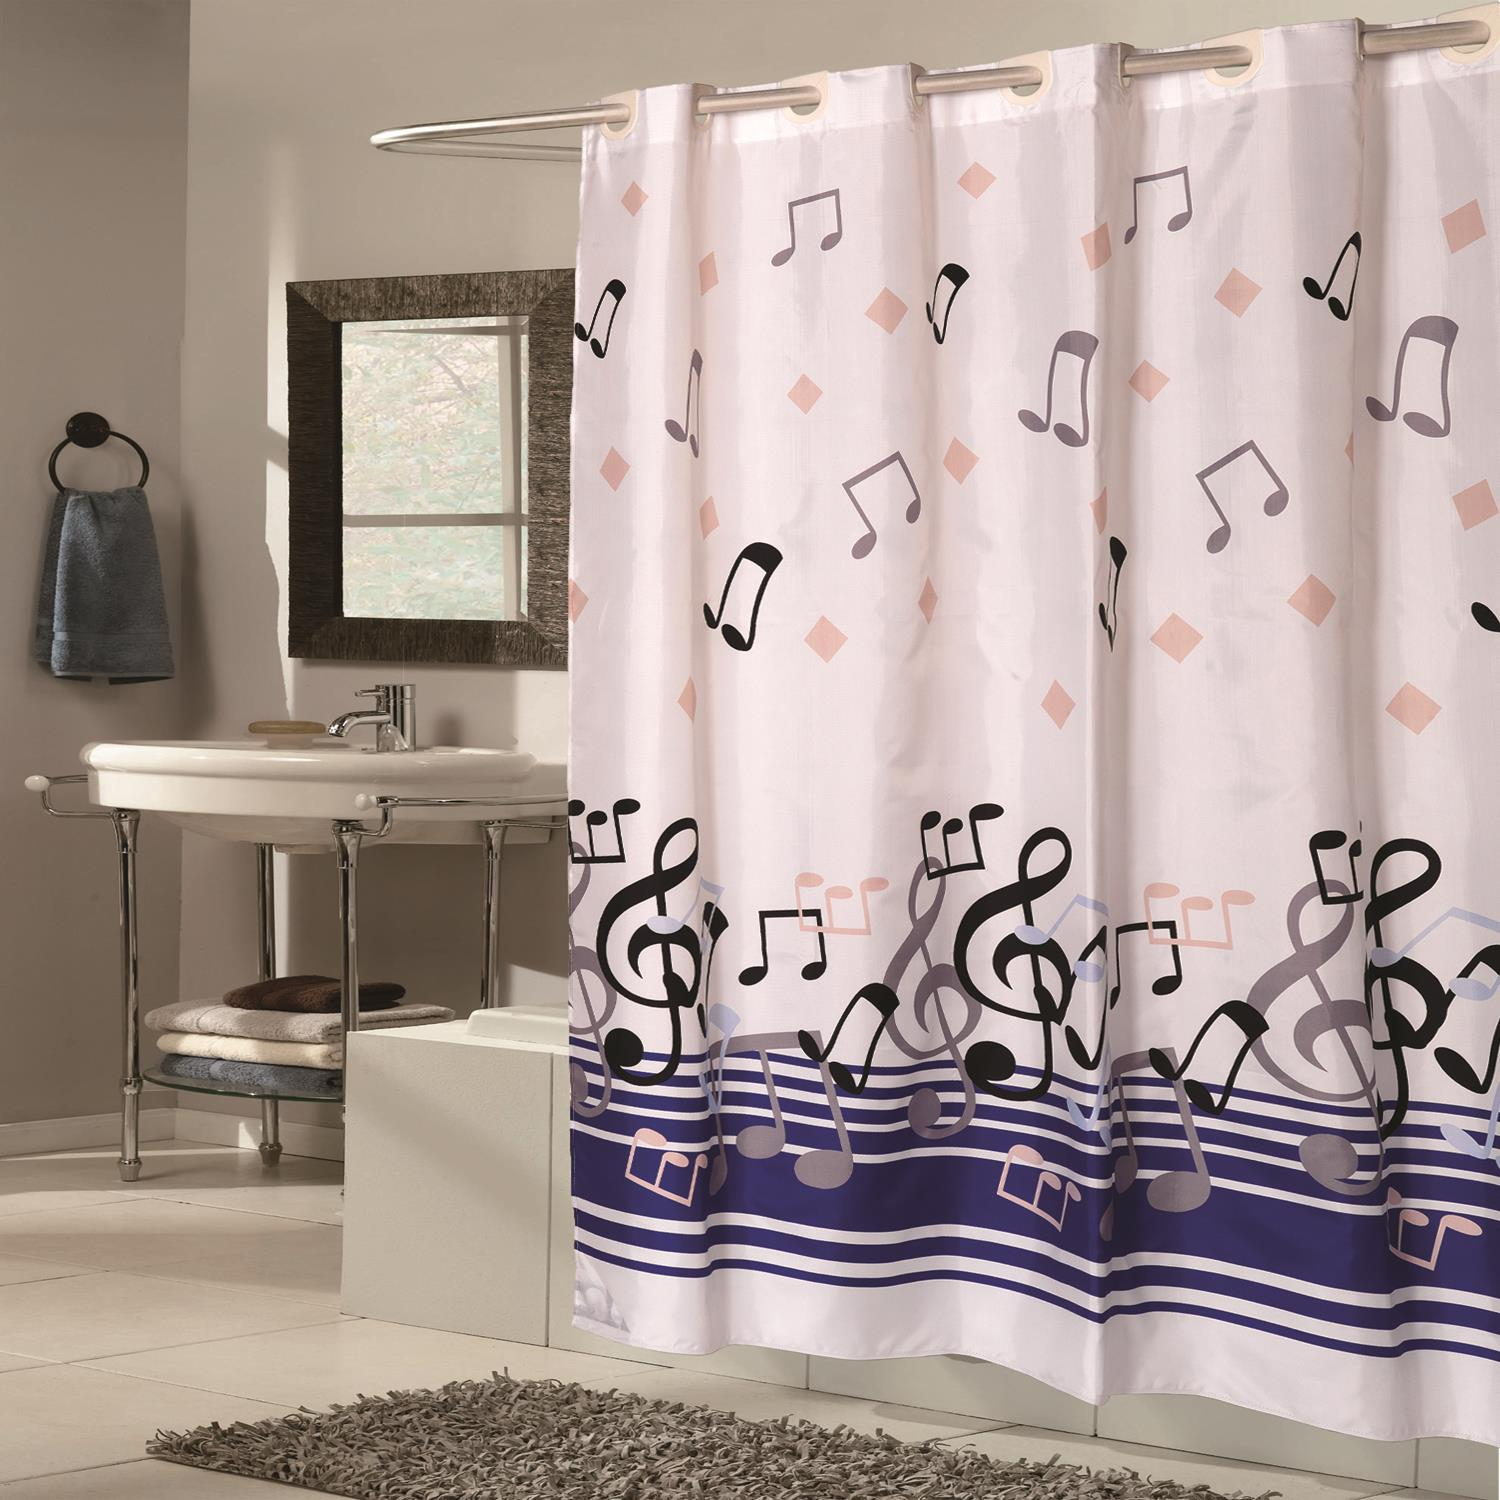 Music Note Shower Curtain The Ultimate Music Themed